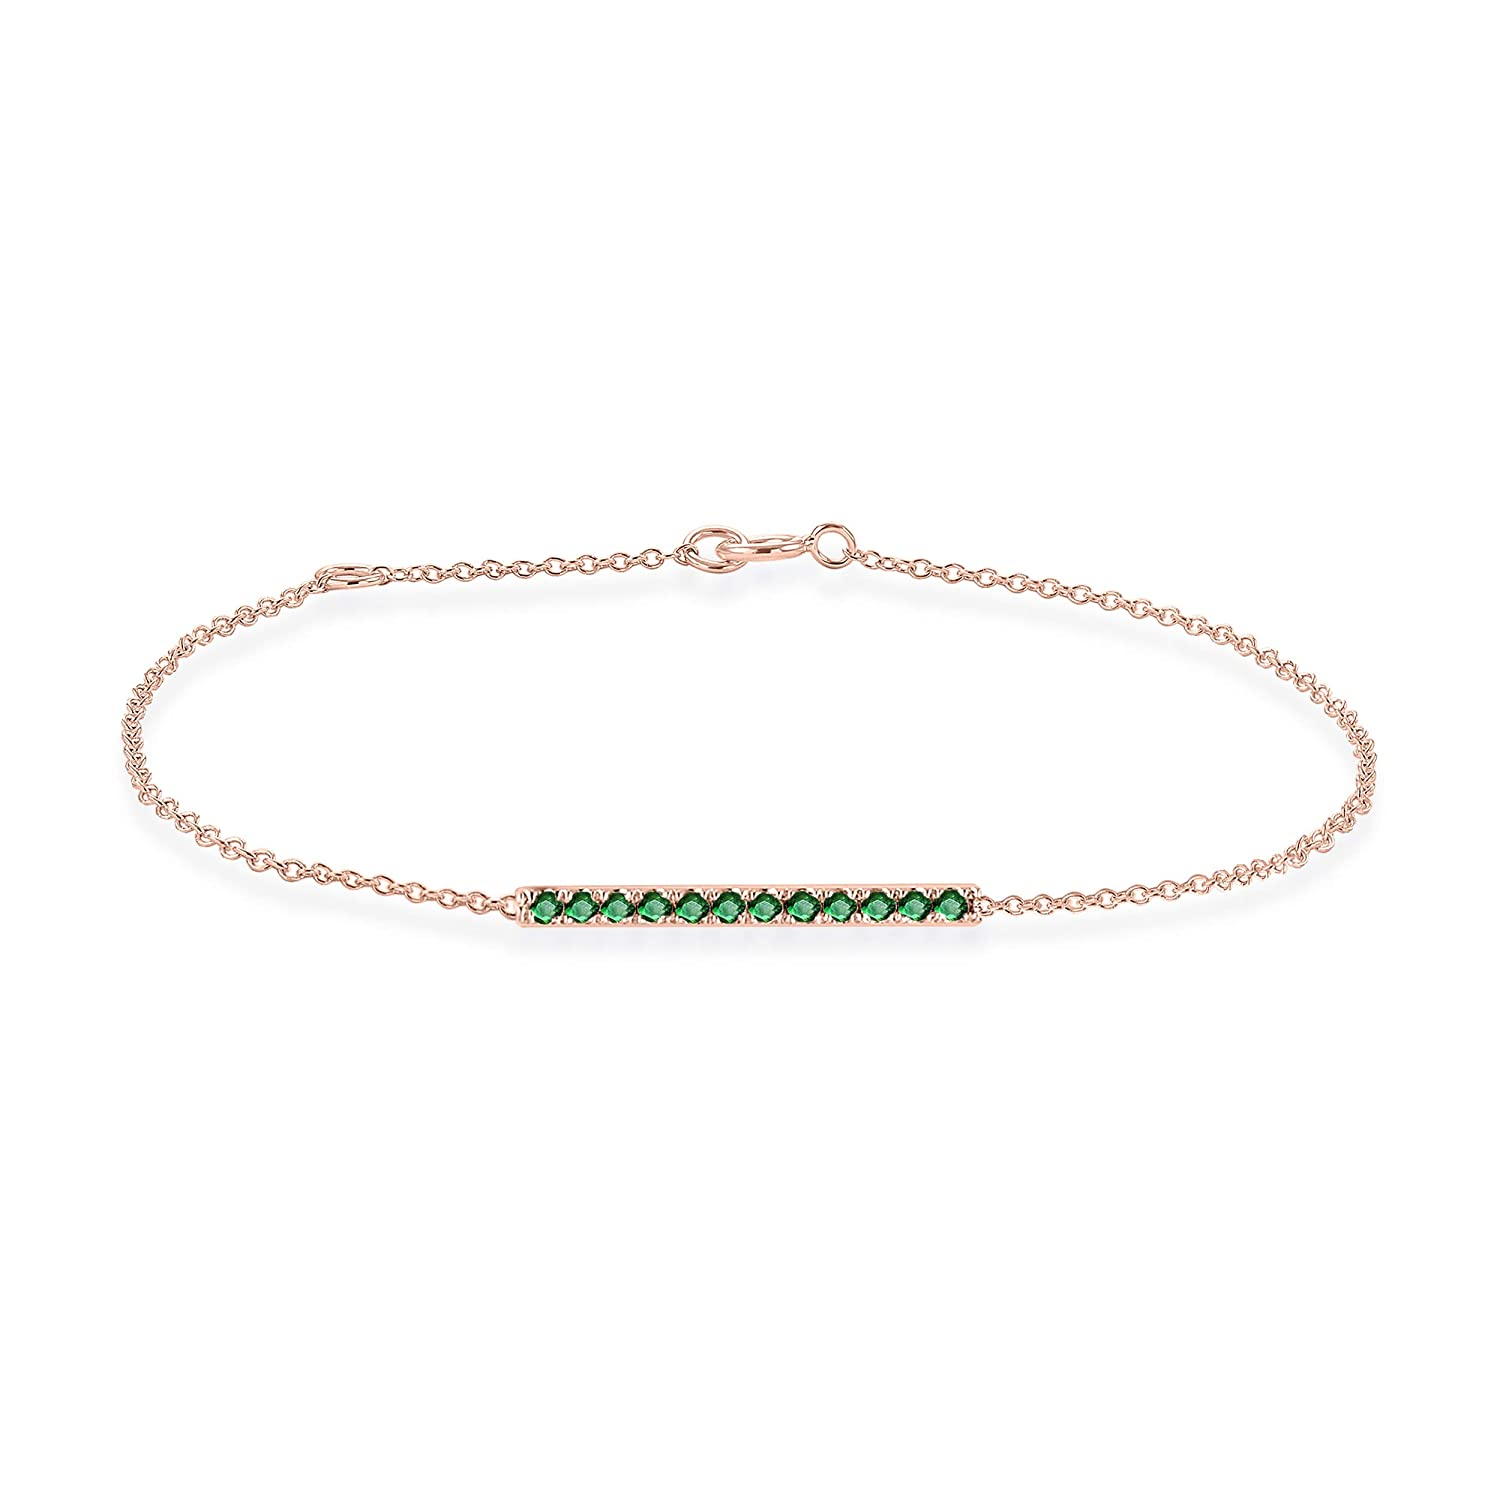 Rare Earth Diamond Jewellery Round Cut Emerald Horizontal Bar Bracelet in 14K Gold Over Sterling Silver BR000537A-ALL-GE-925-Y-8